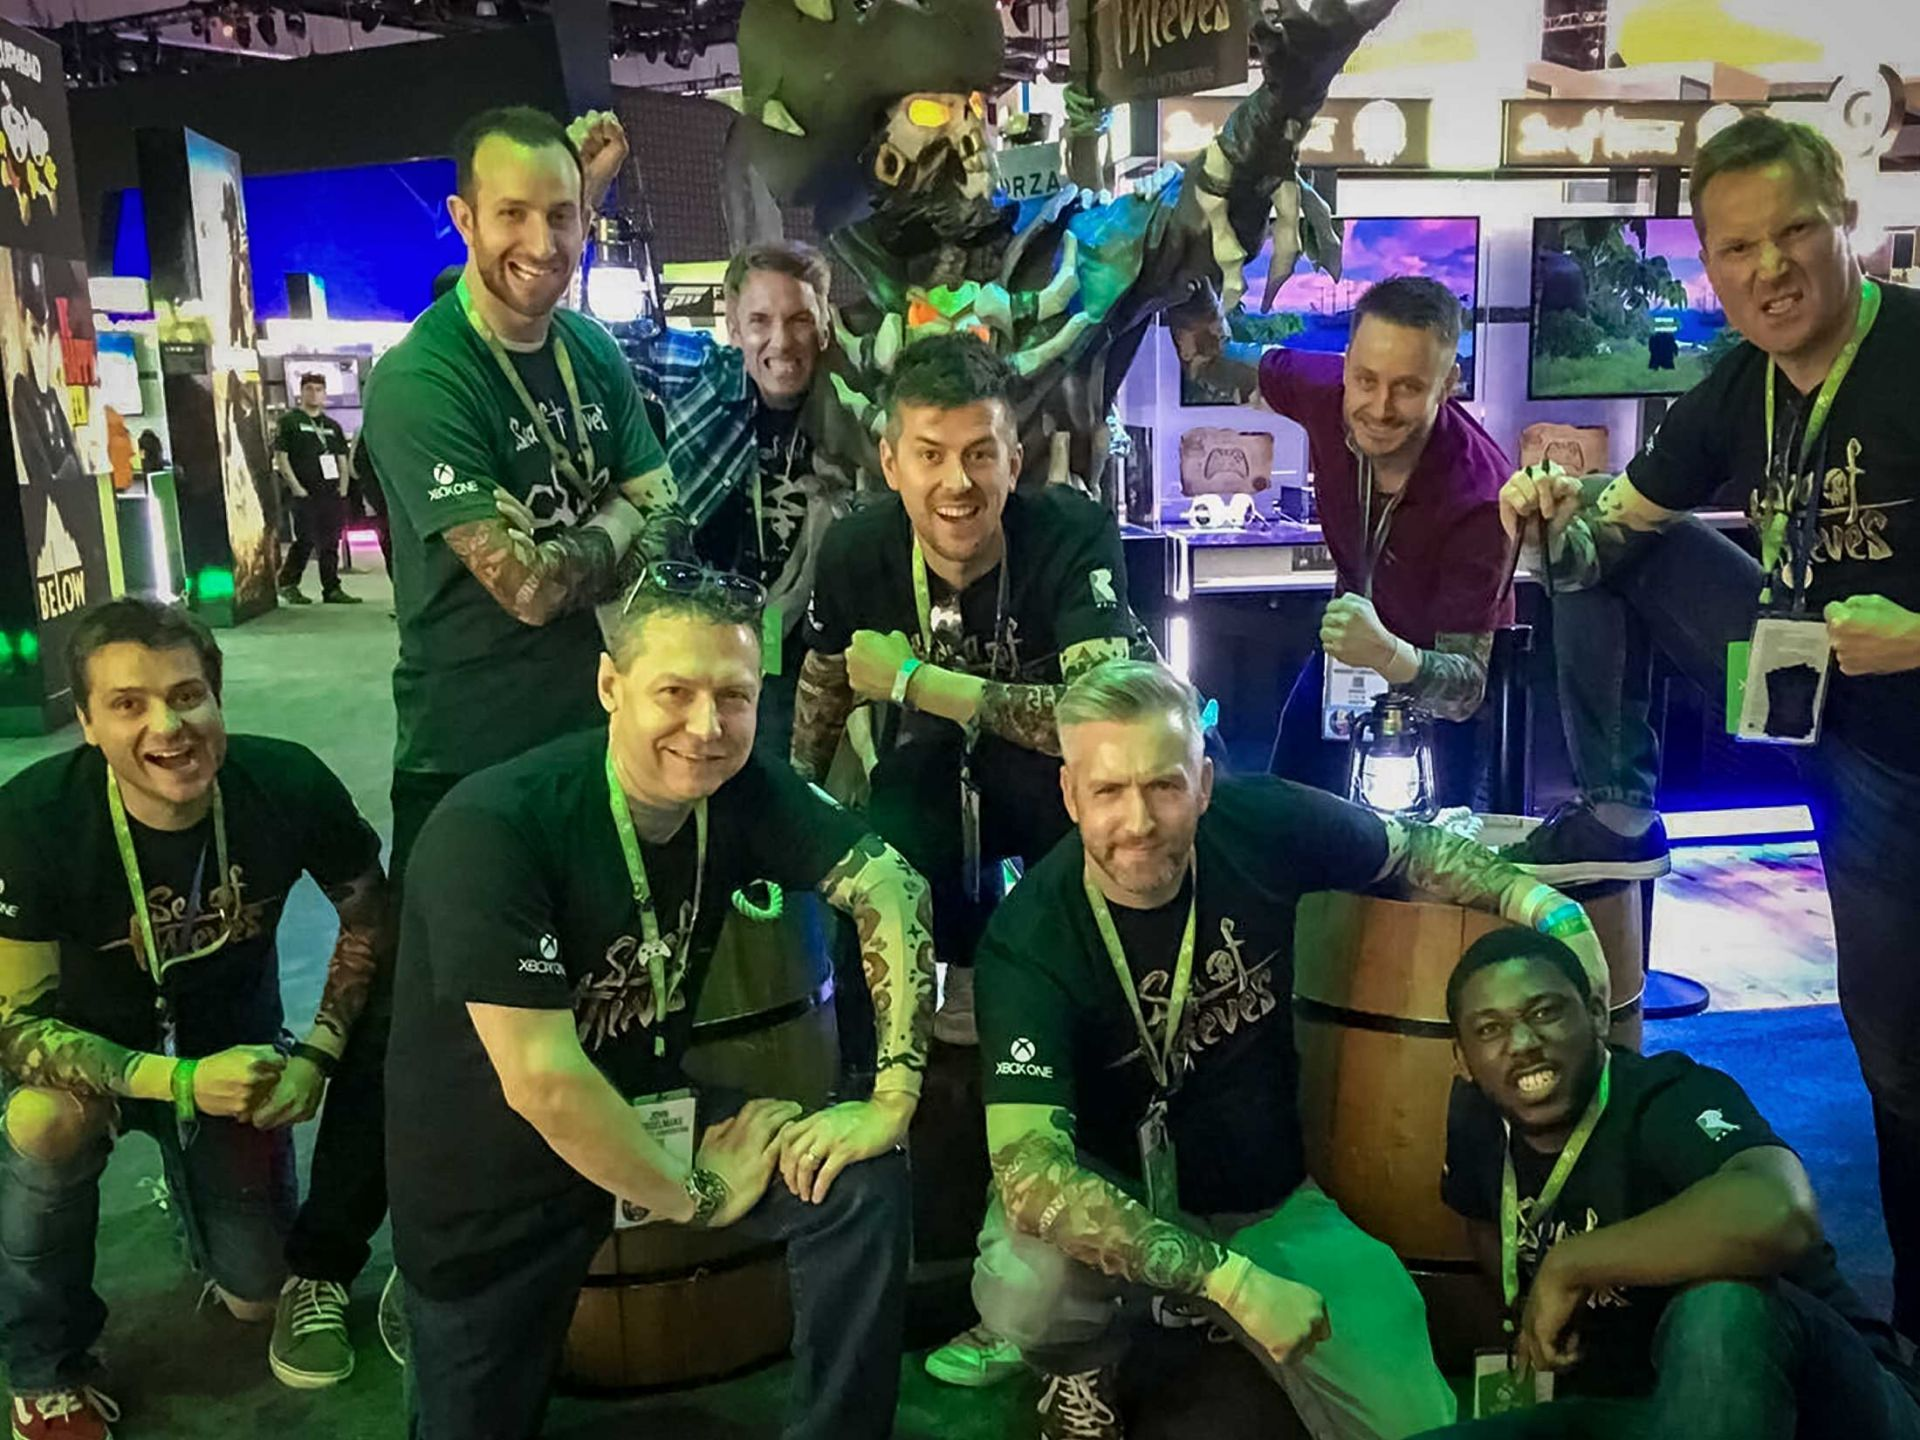 Microsoft team with sea of thieves prop at e3 expo.